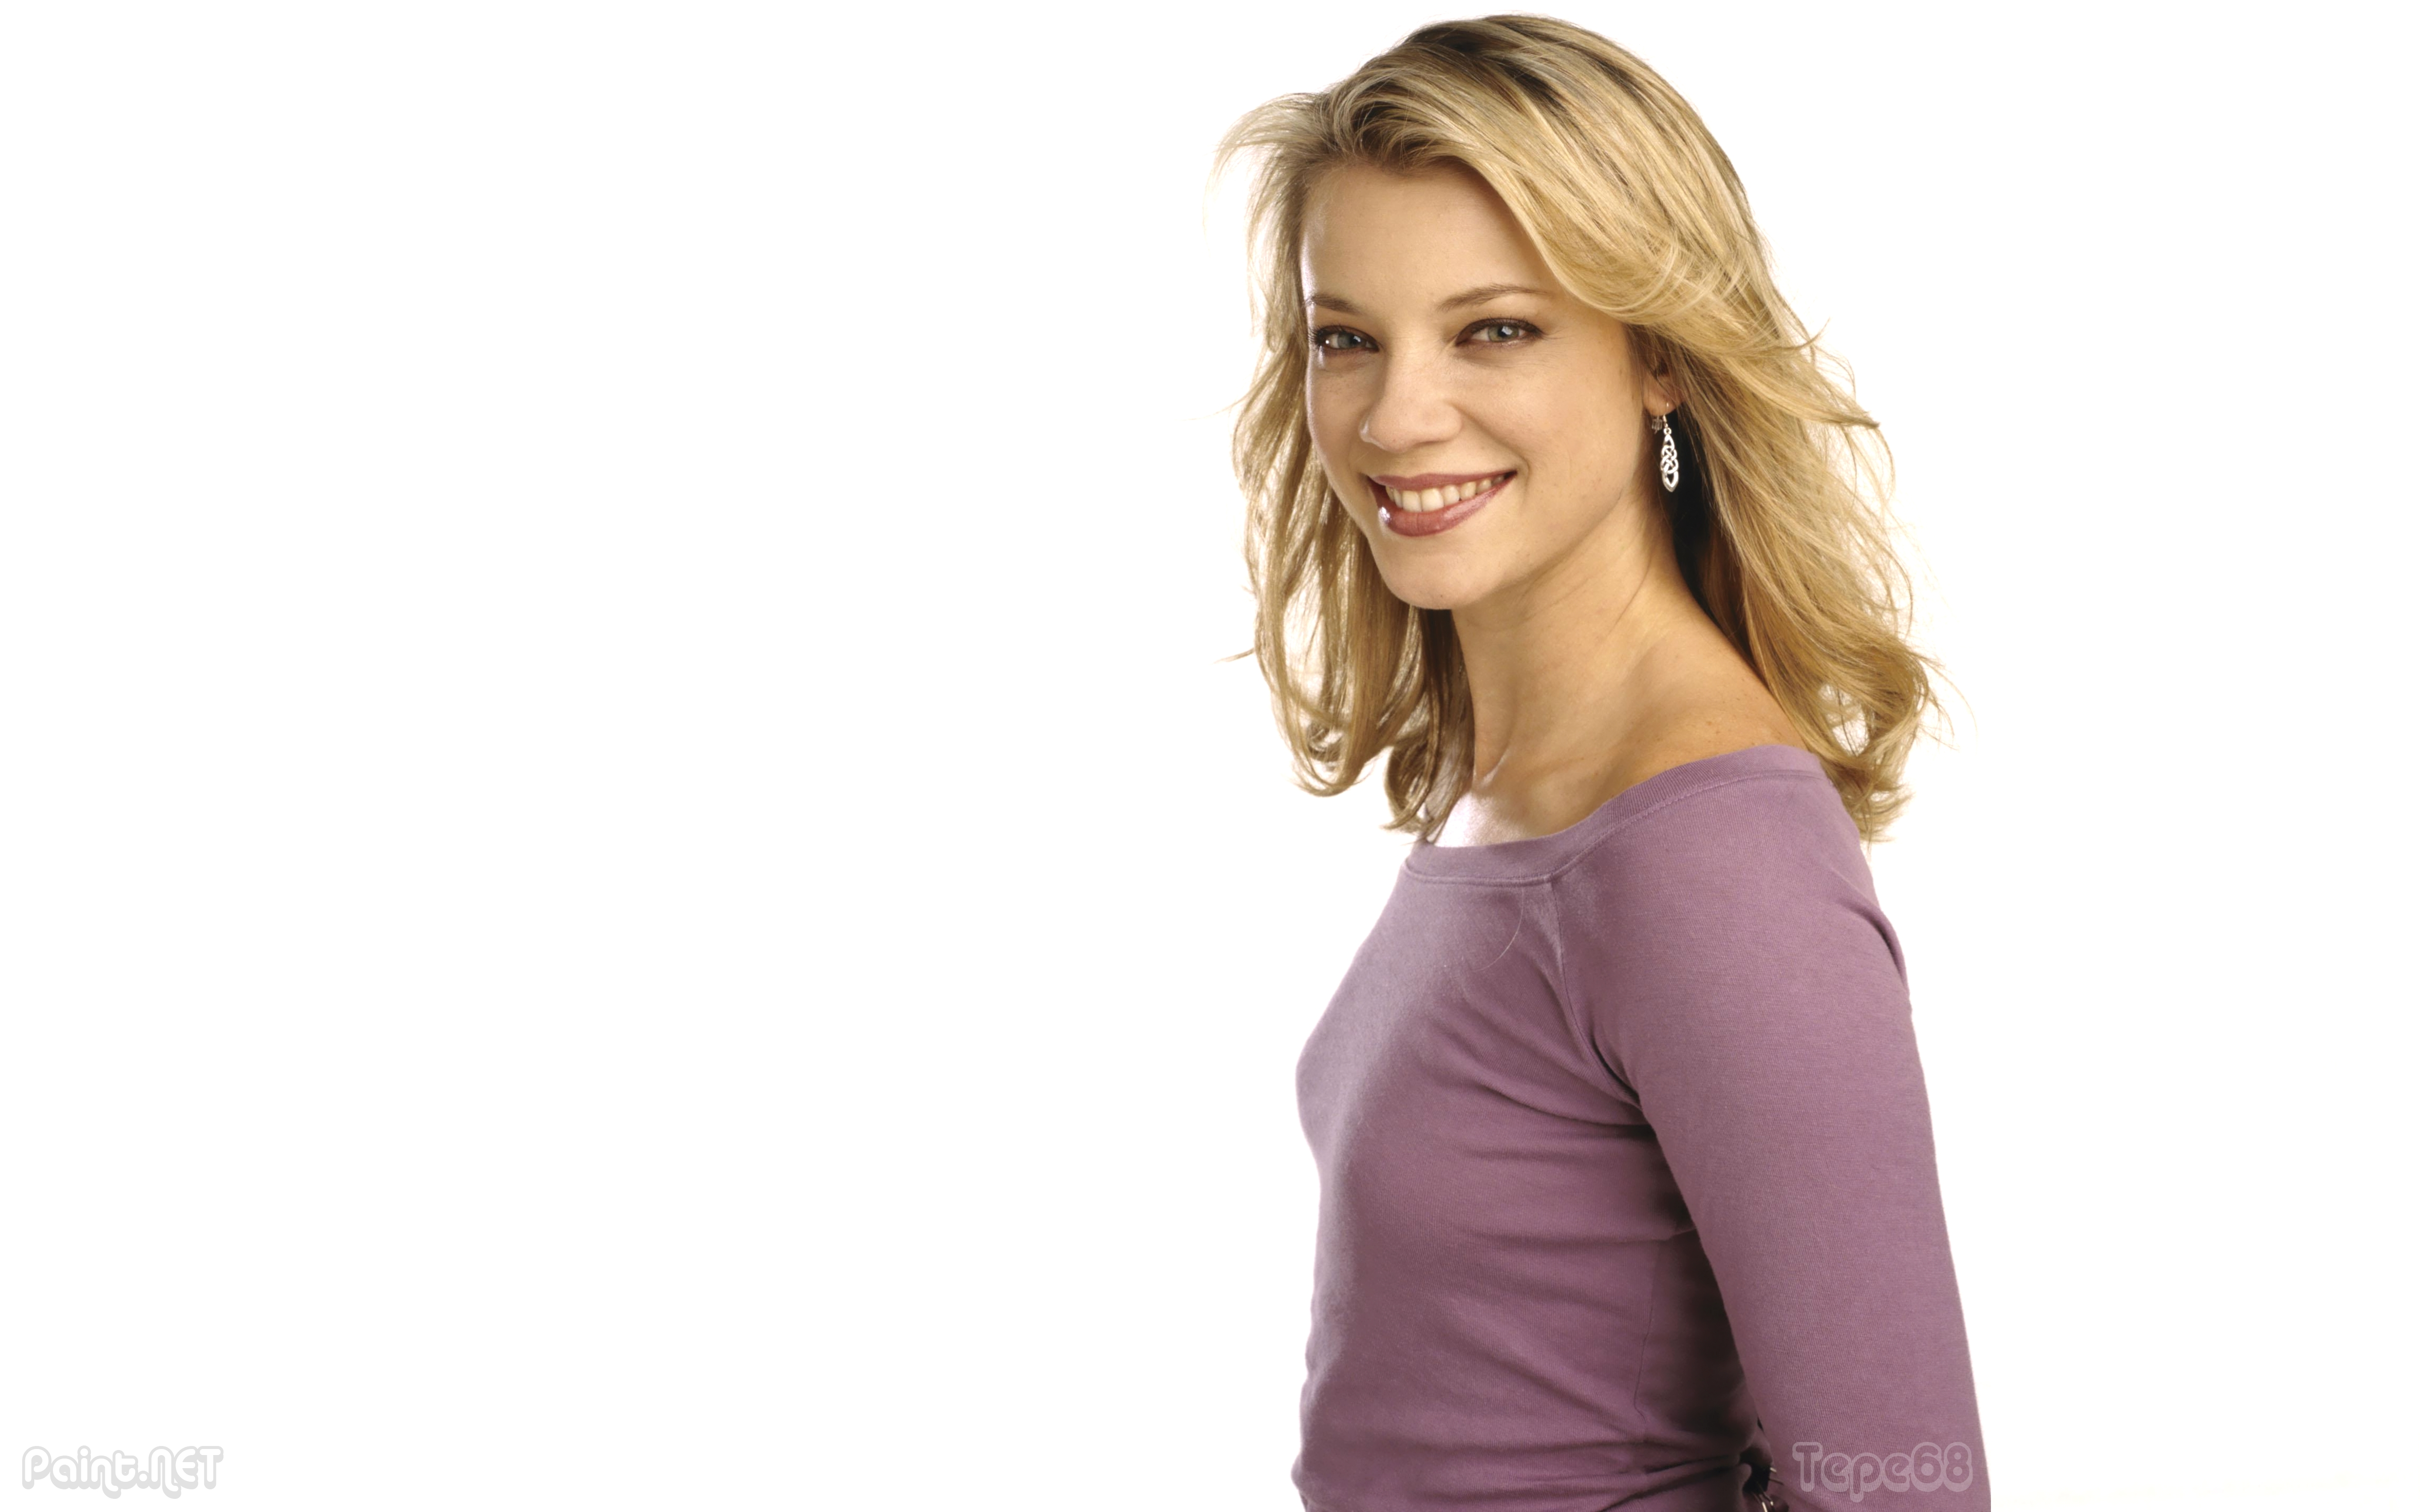 4800x3000 - Amy Smart Wallpapers 1